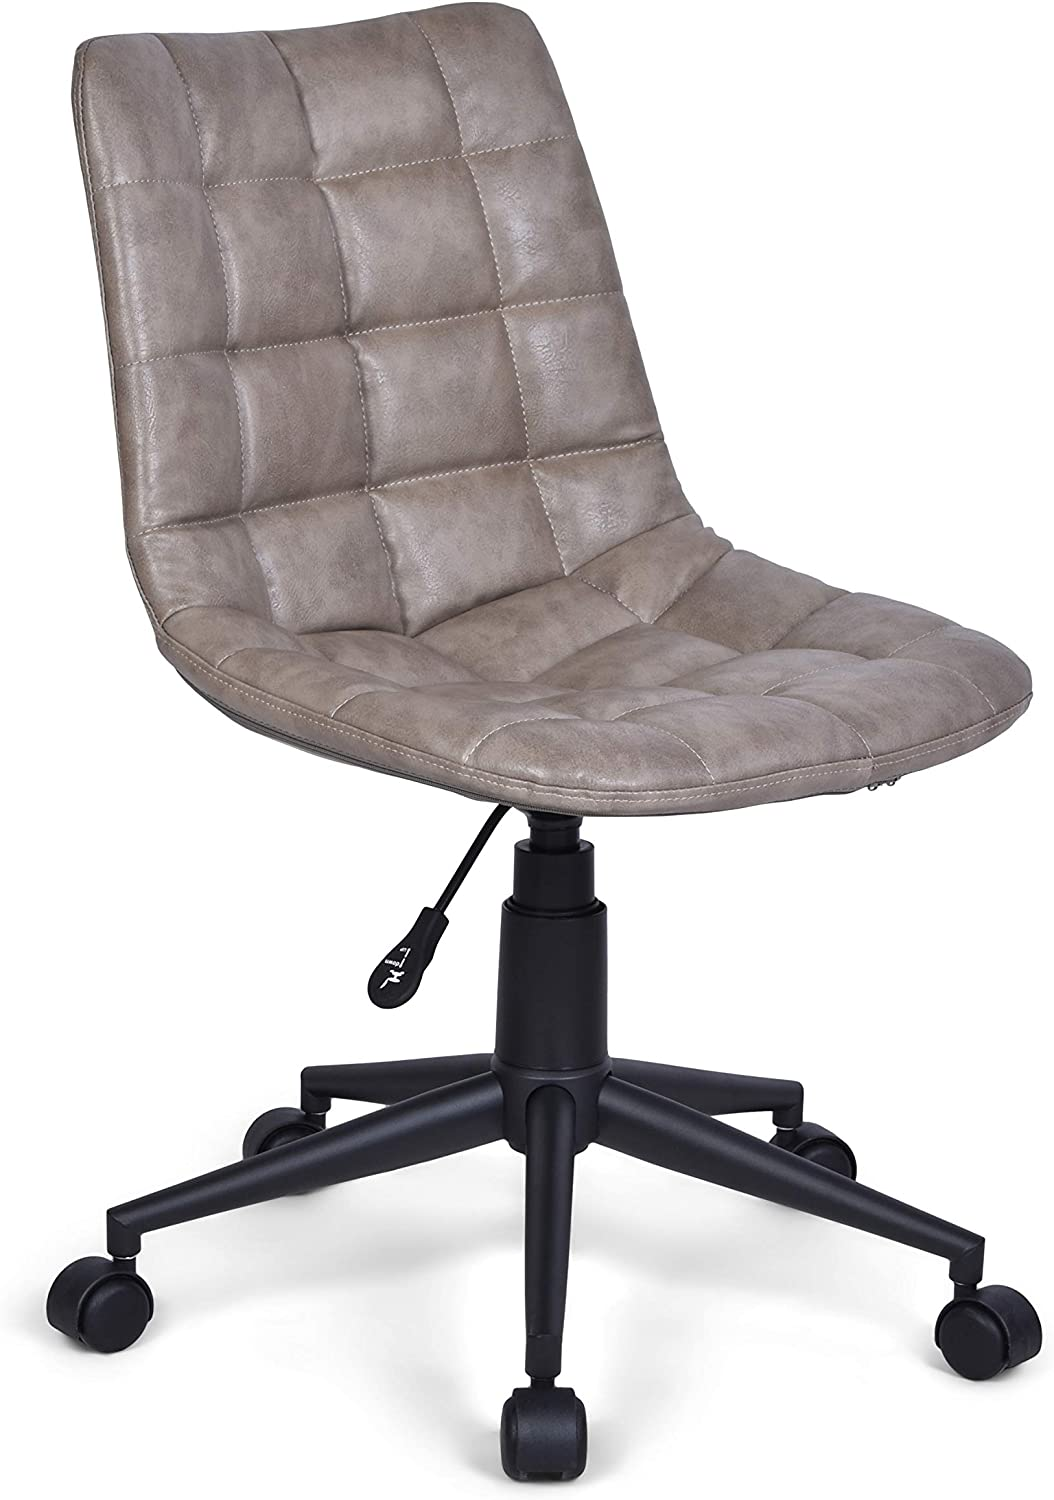 Simpli Home Chambers Swivel Adjustable Executive Computer Office Chair in Distressed Grey